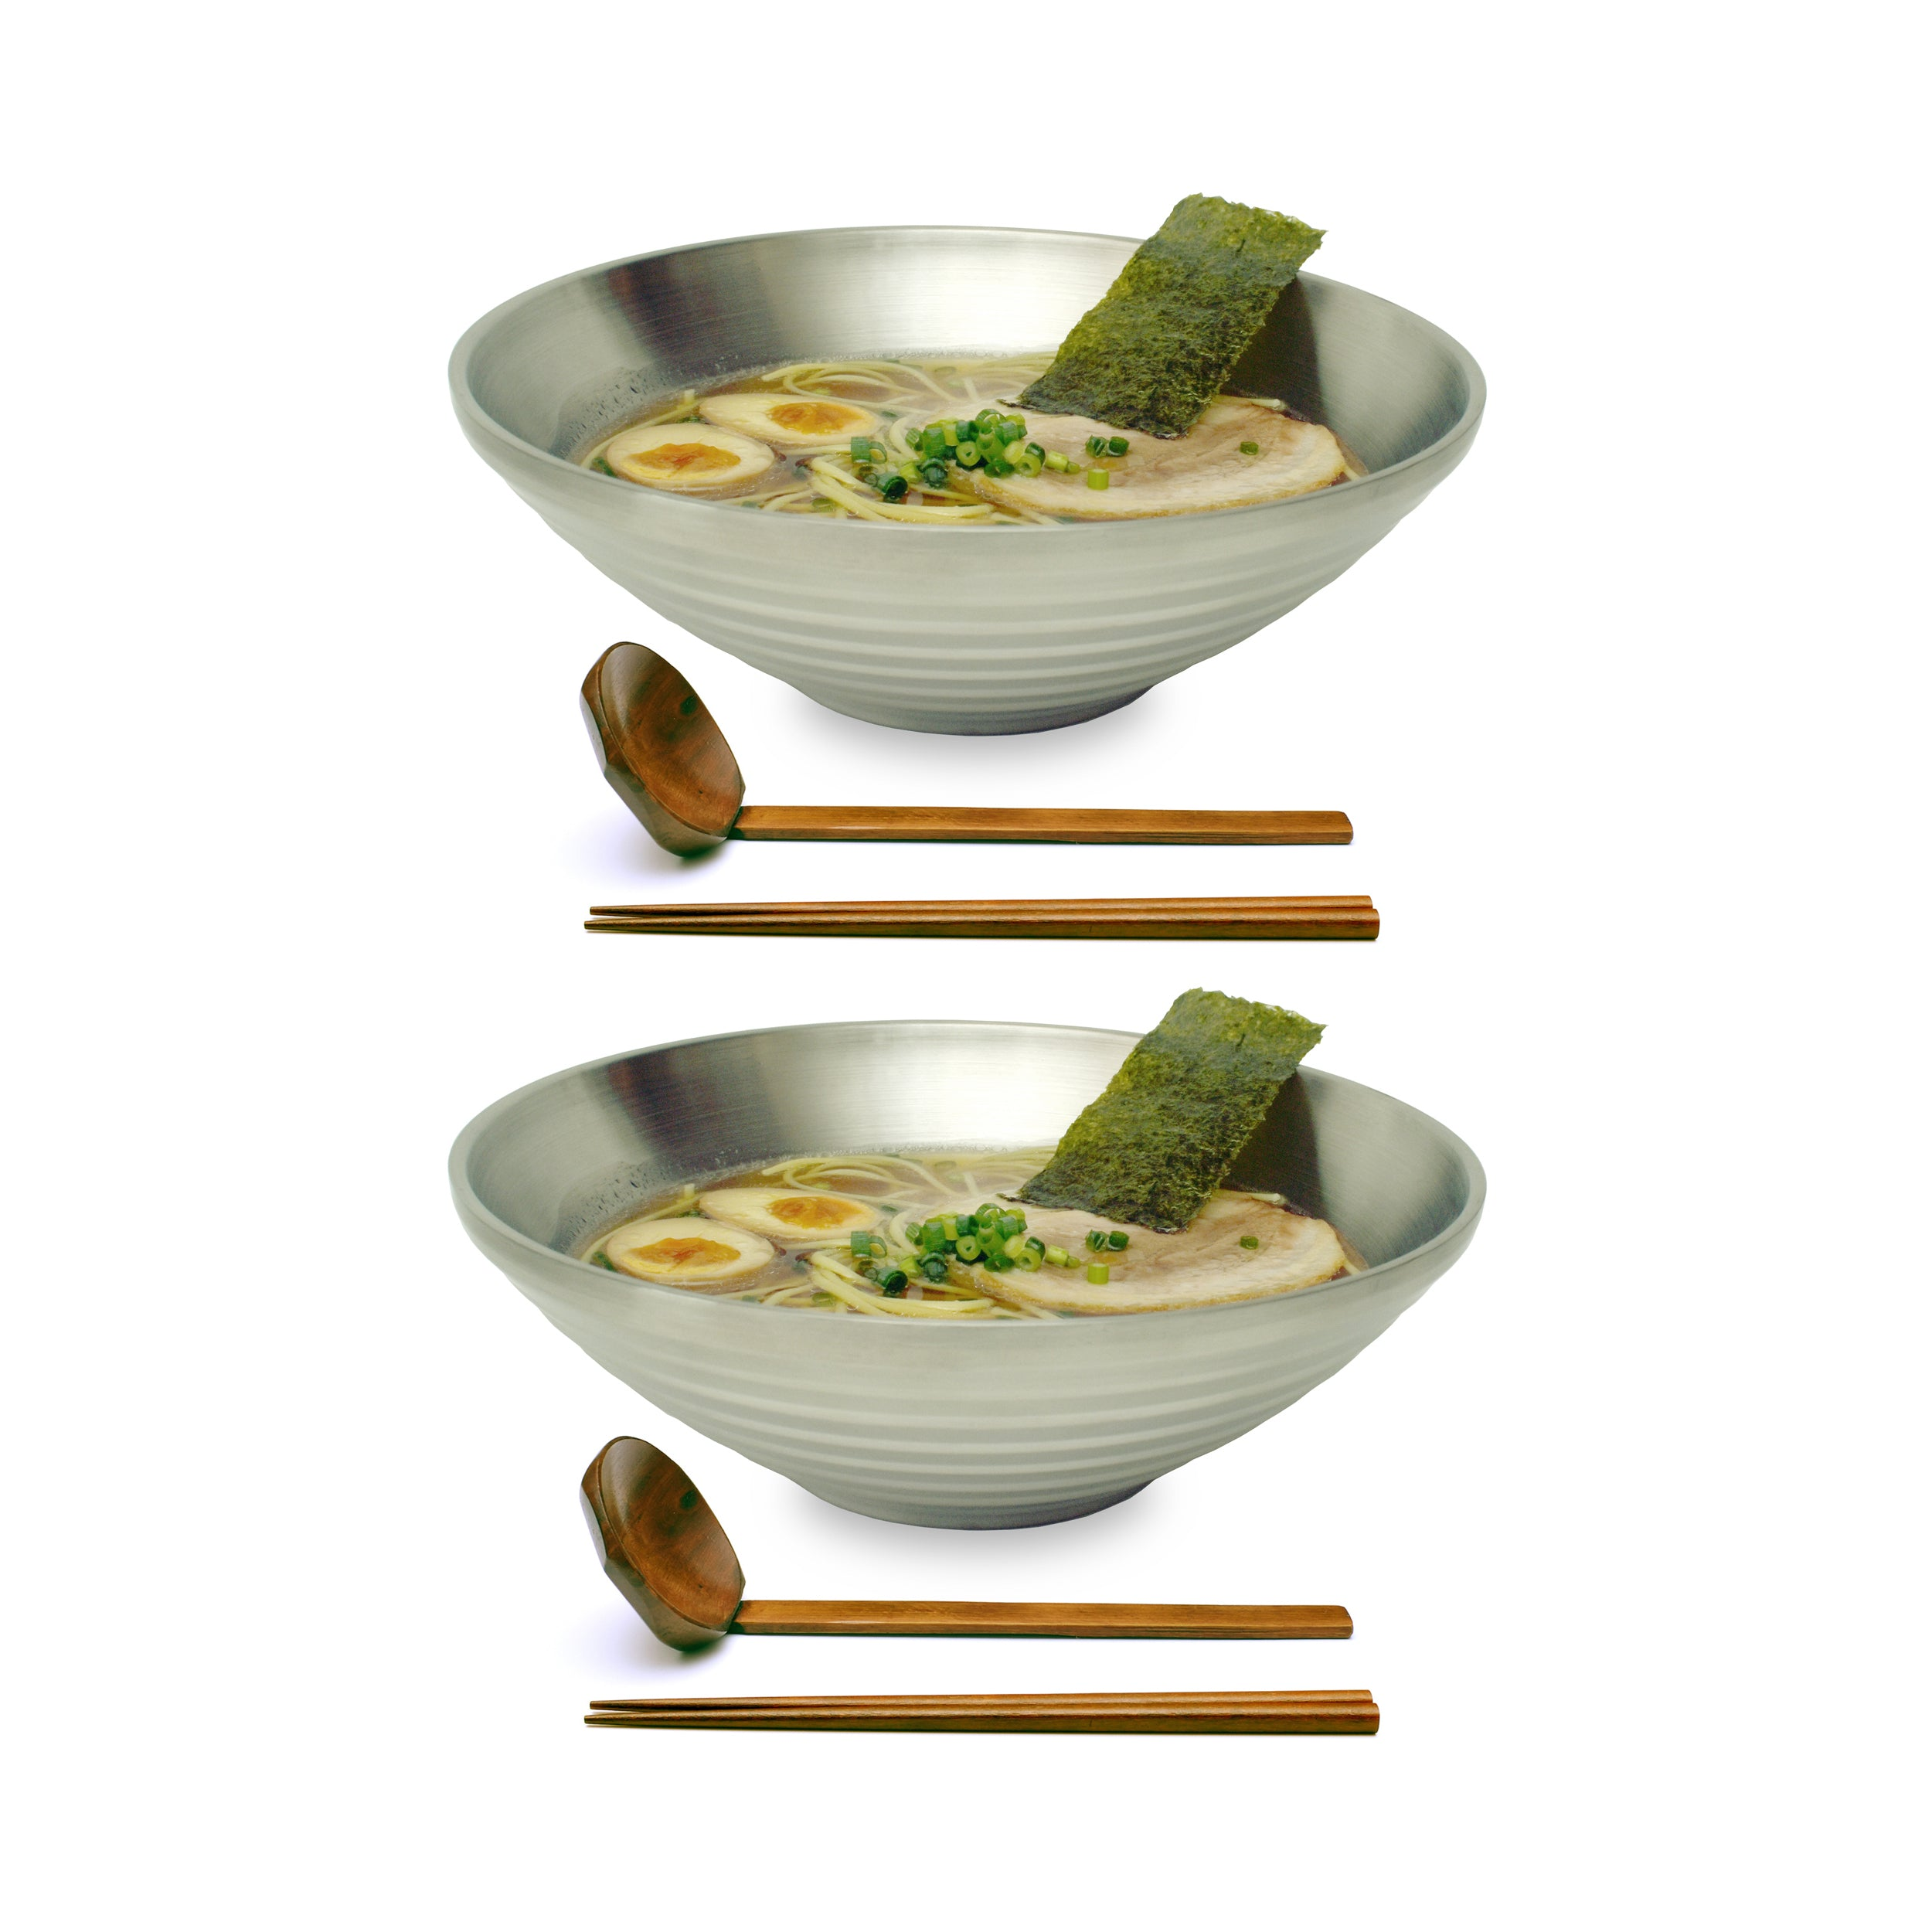 "Stainless Steel 9.5"" Japanese Ramen Bowls"